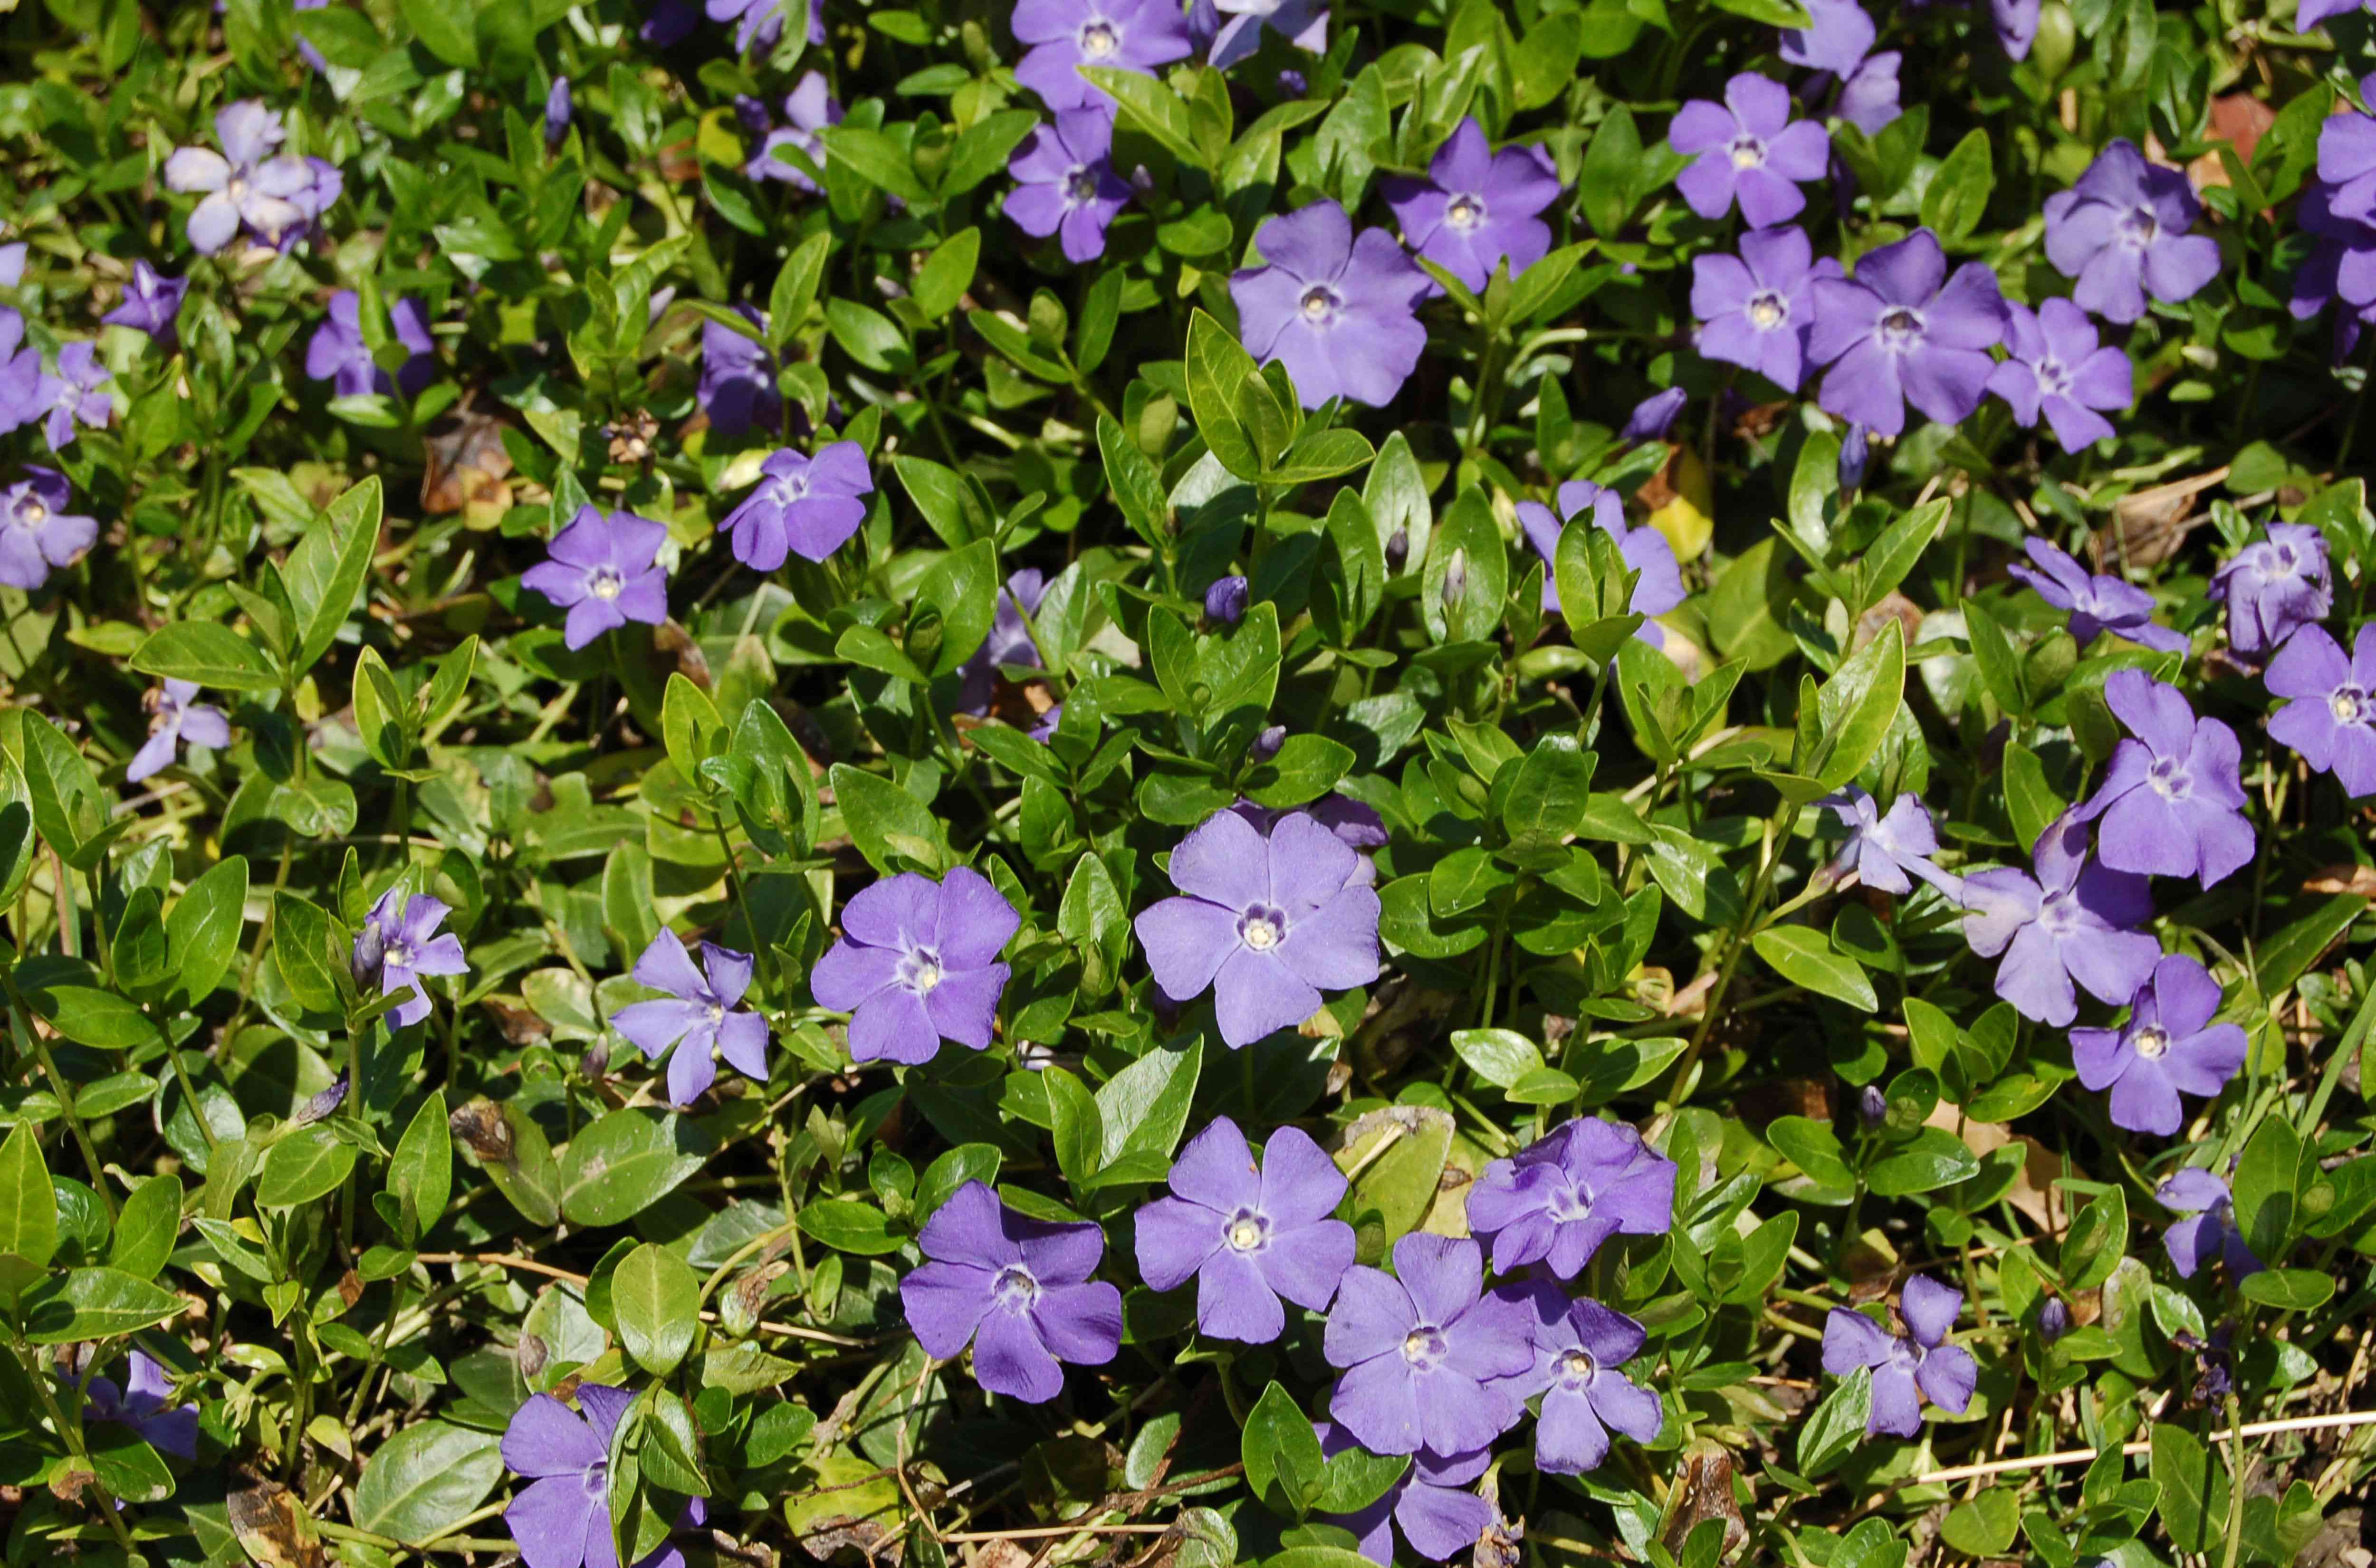 Vinca minor plant with small purple flowers between leaves in sunlight